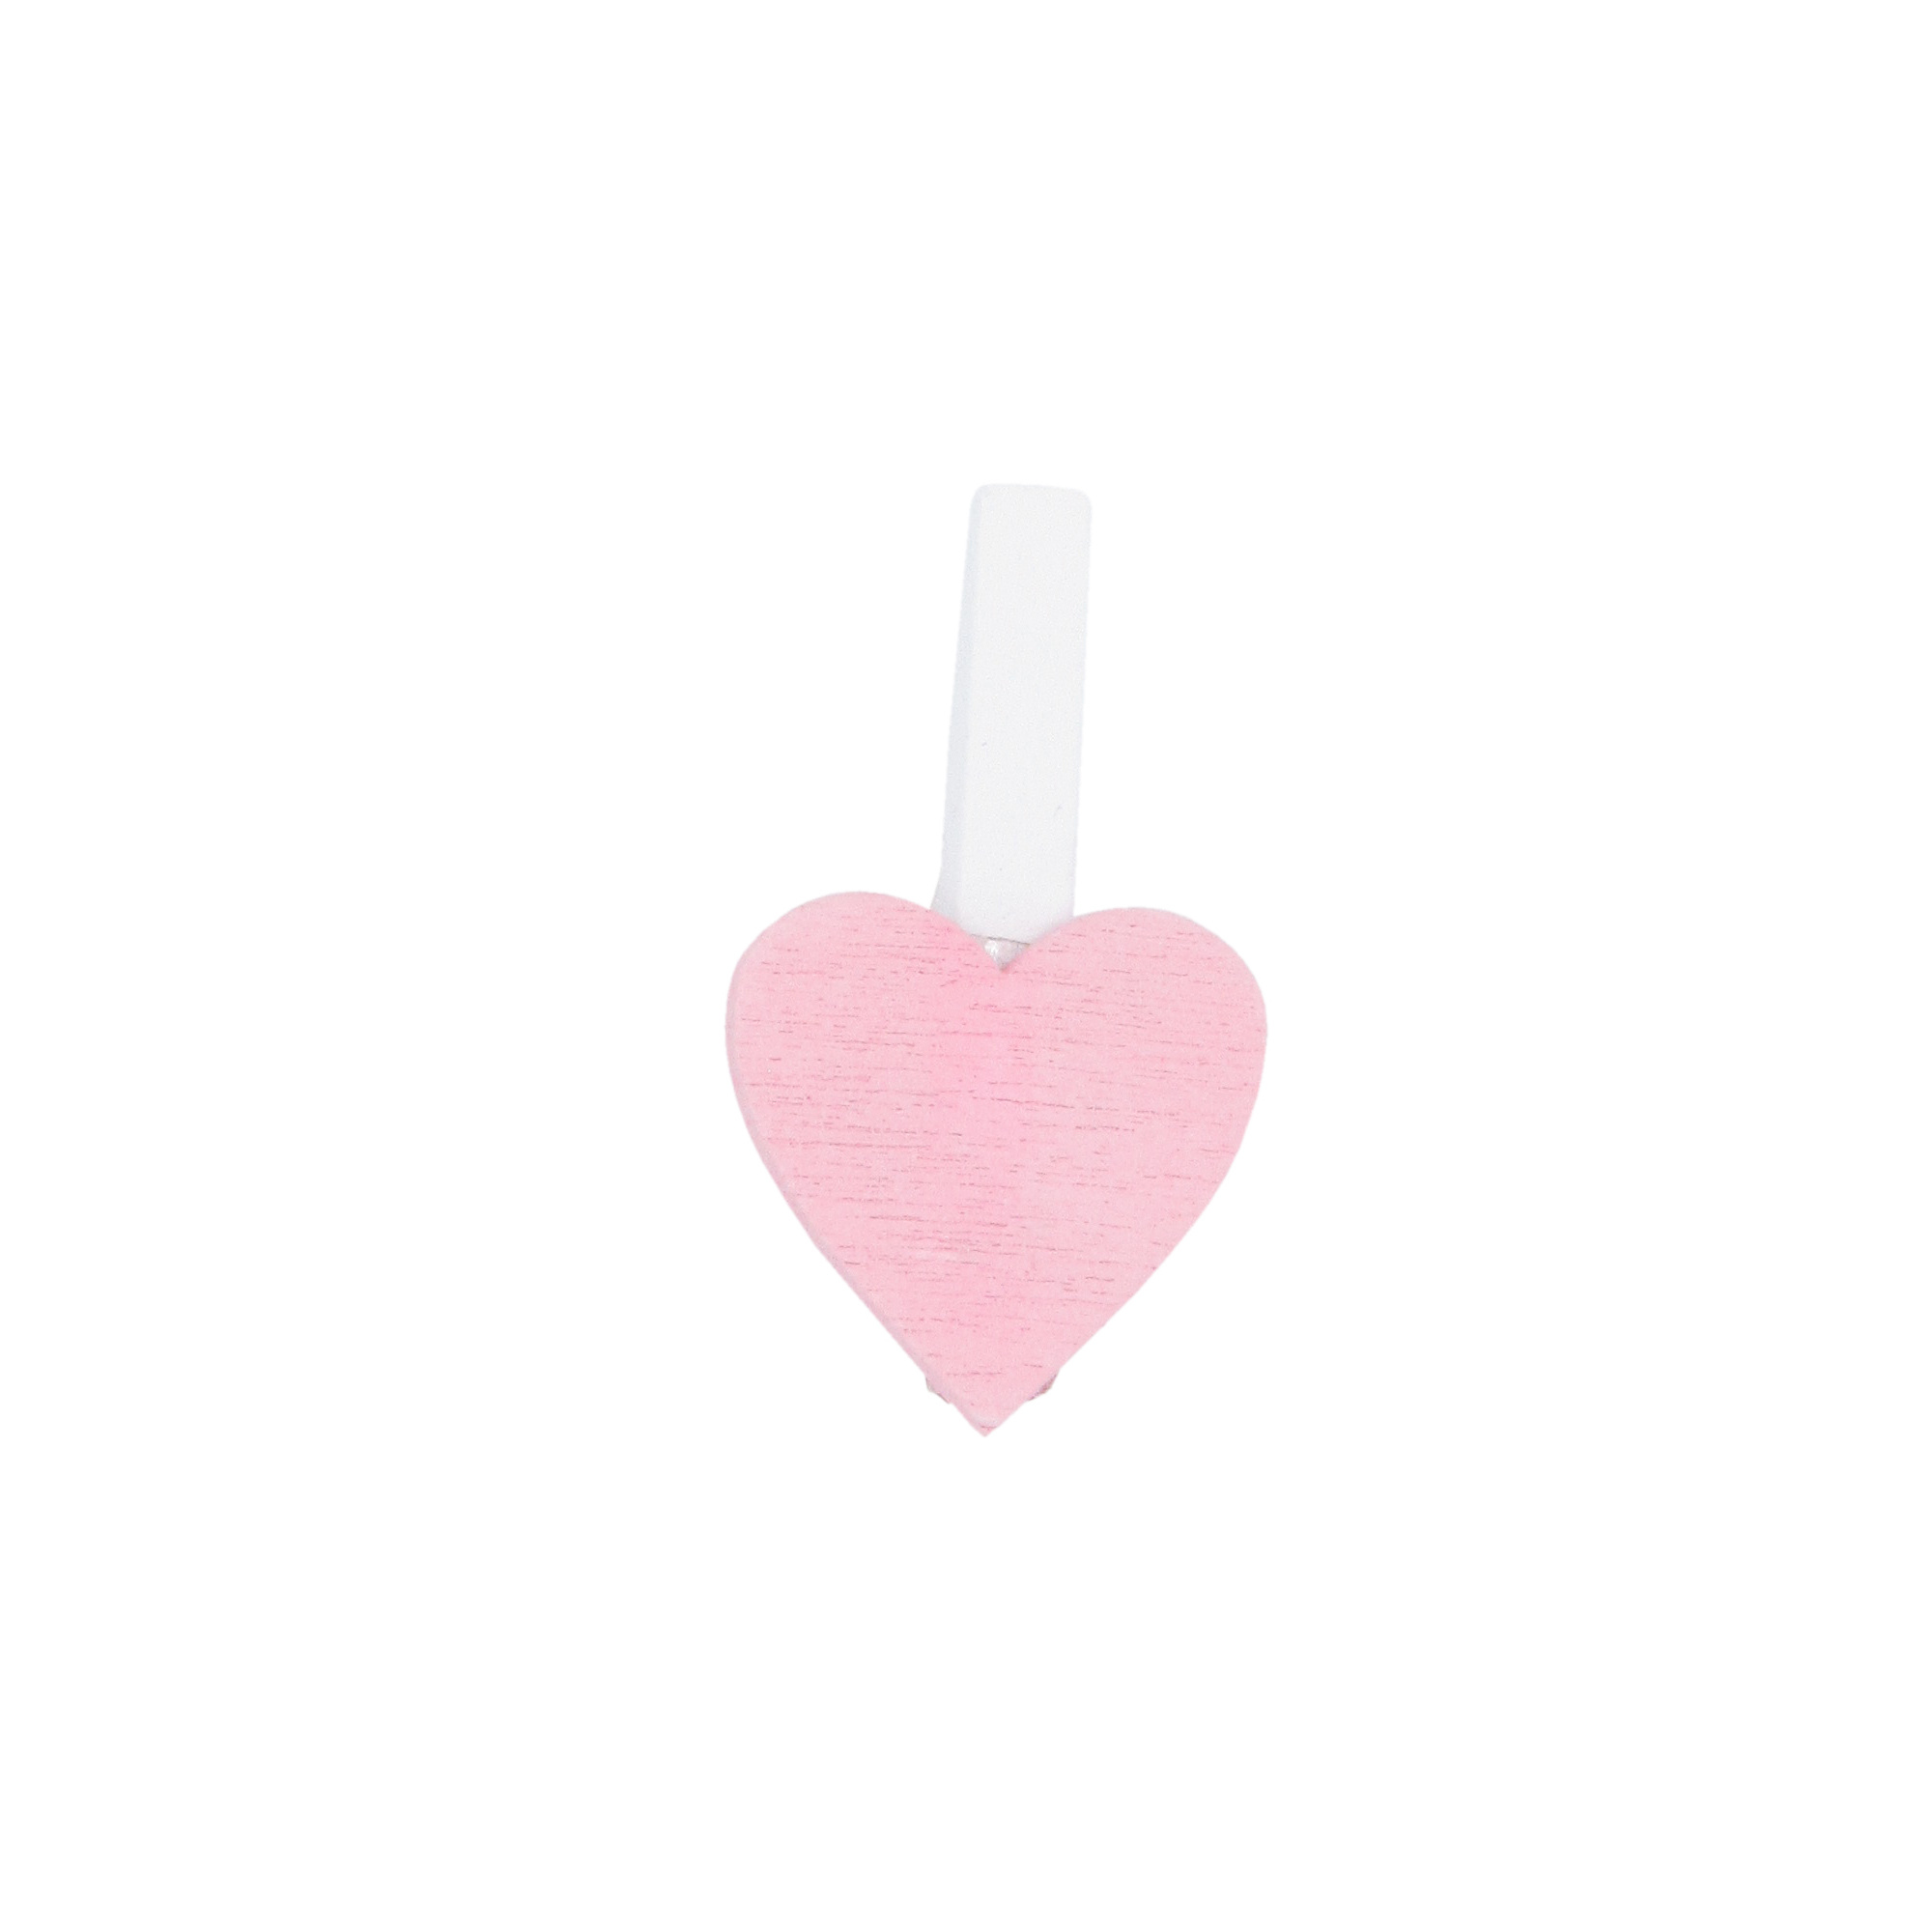 "Wooden clip ""Small Heart"" - light pink - 18*18mm - 36 pieces"